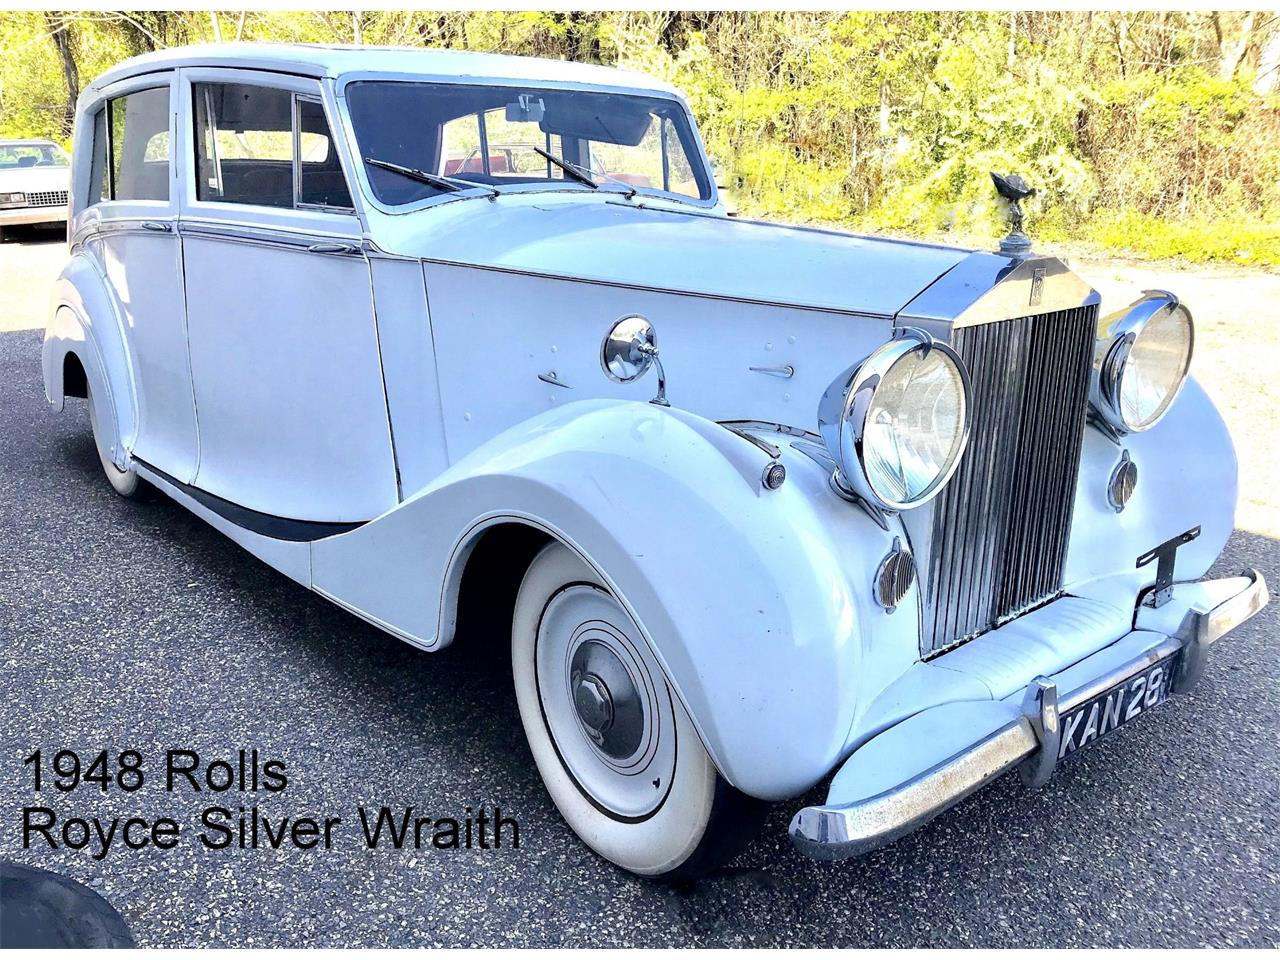 1948 Rolls-Royce Silver Wraith for sale in Stratford, NJ